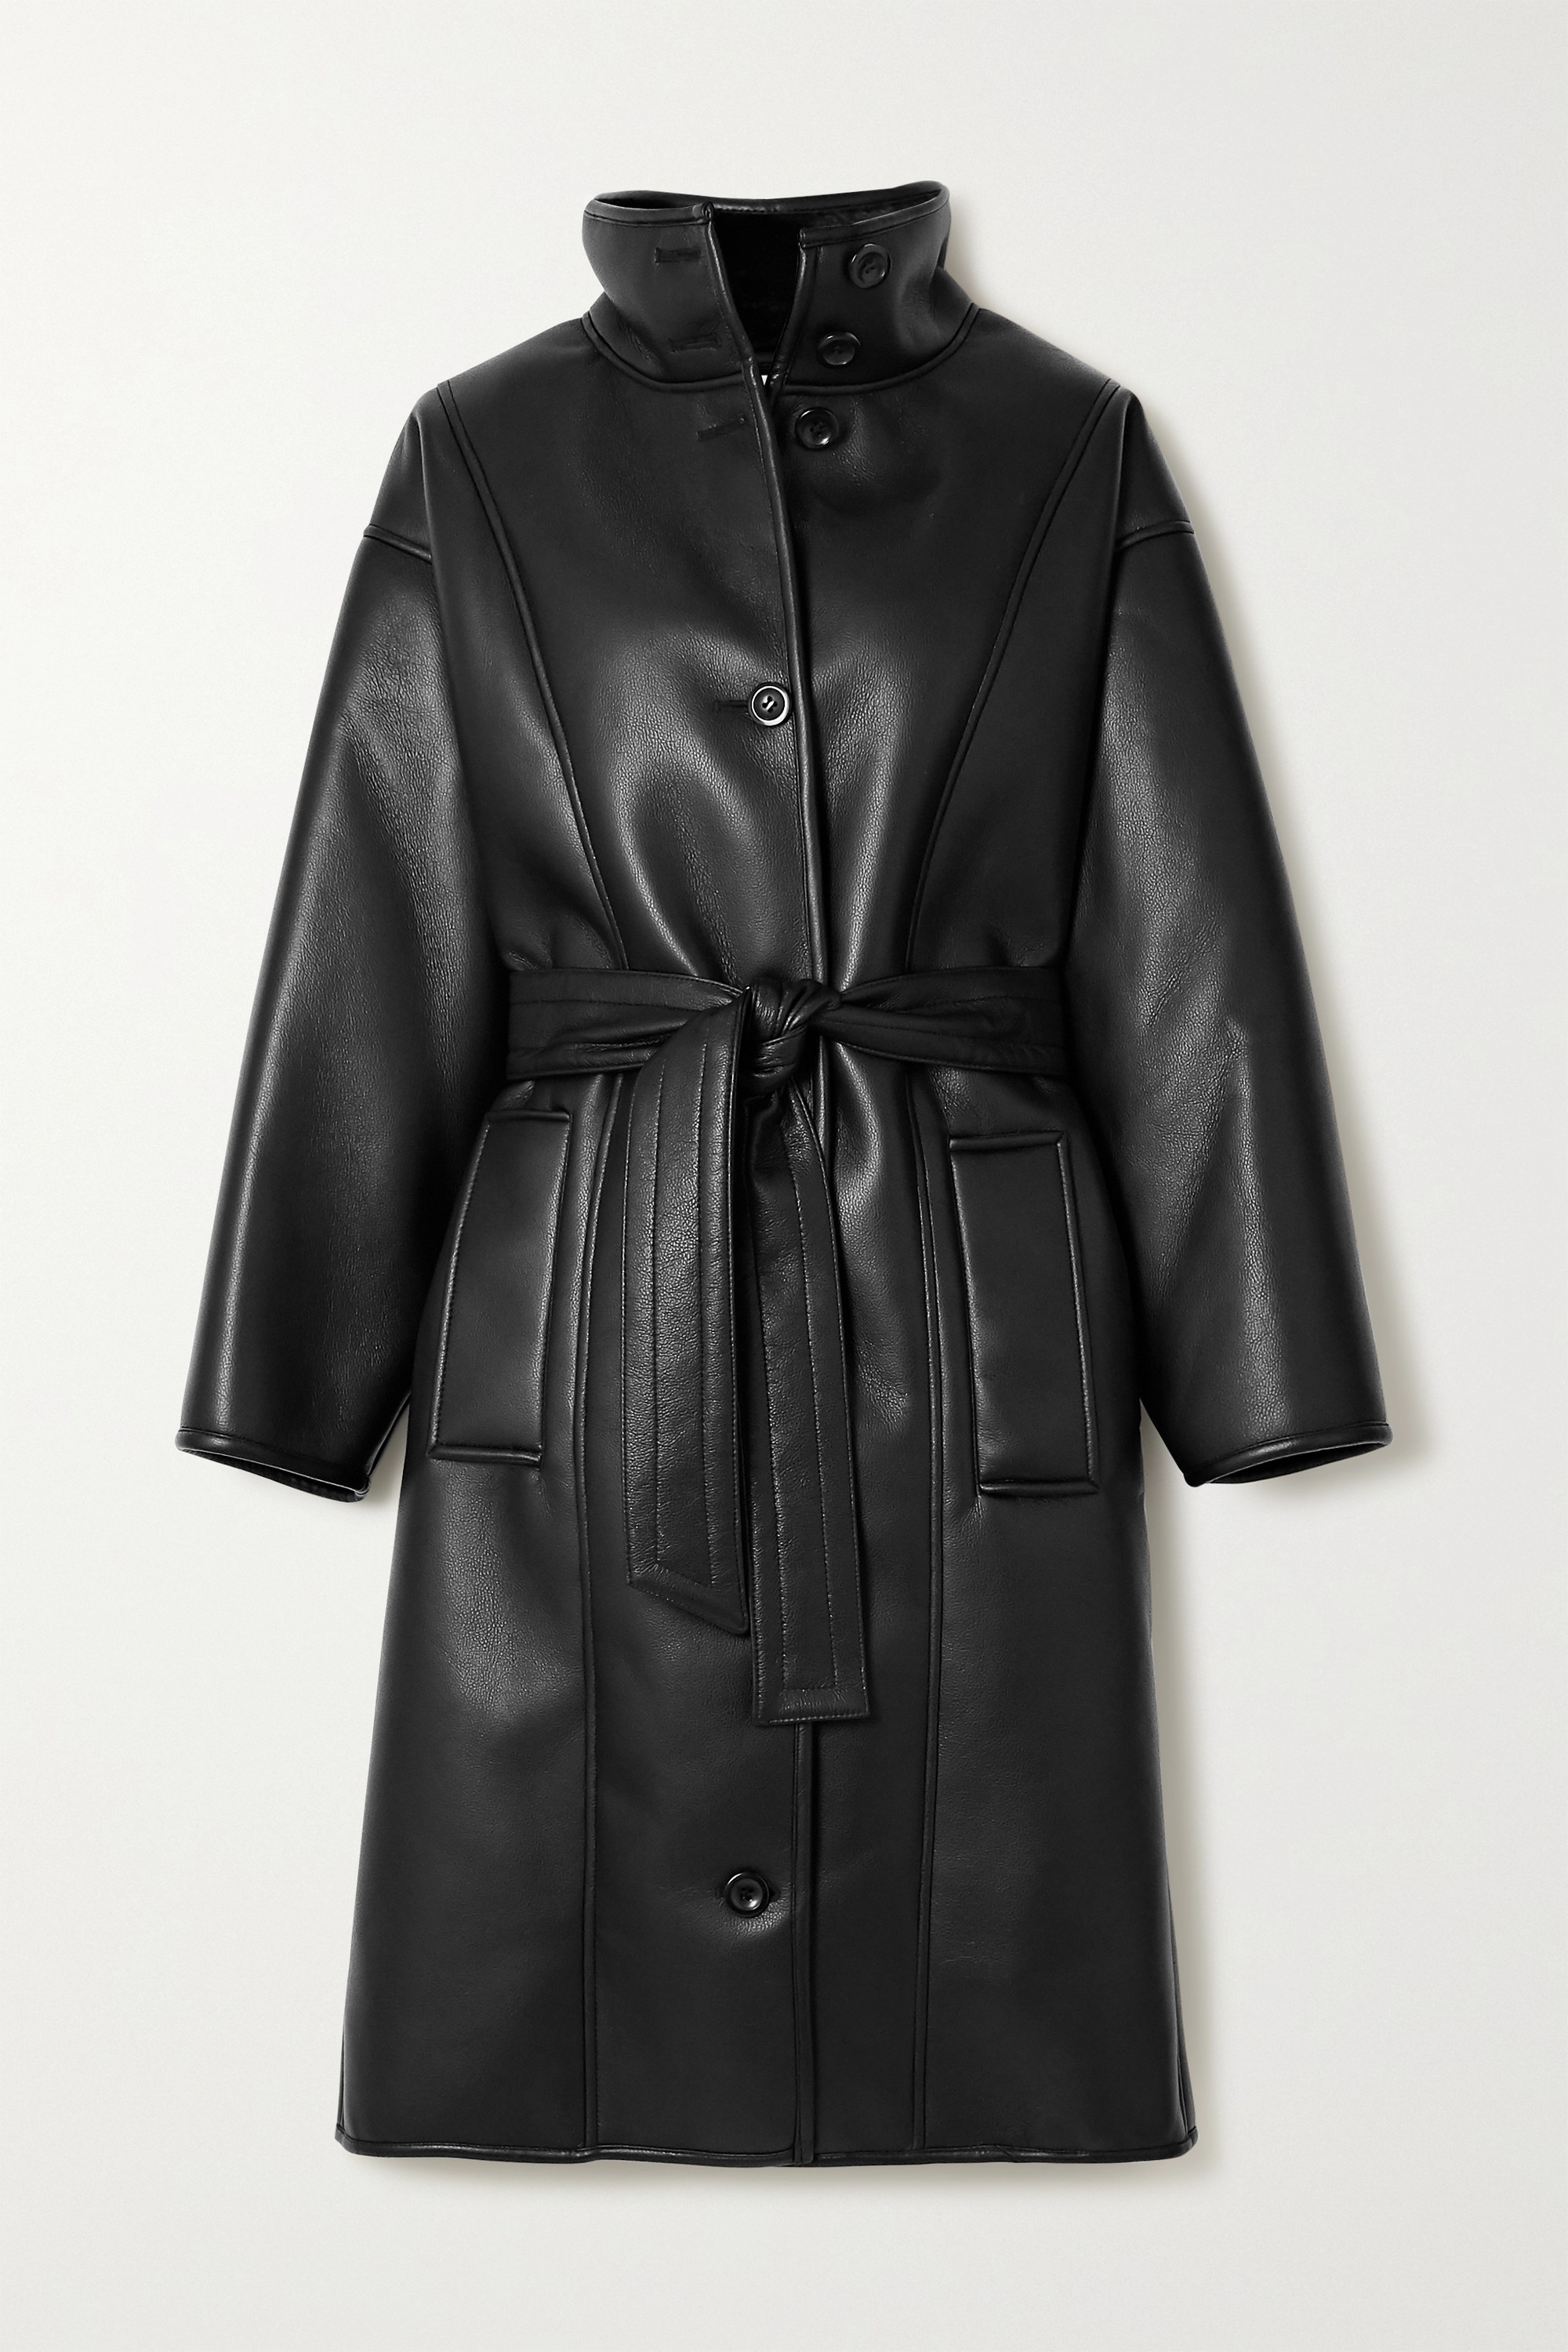 Stand Studio Kristina faux shearling-lined faux leather coat